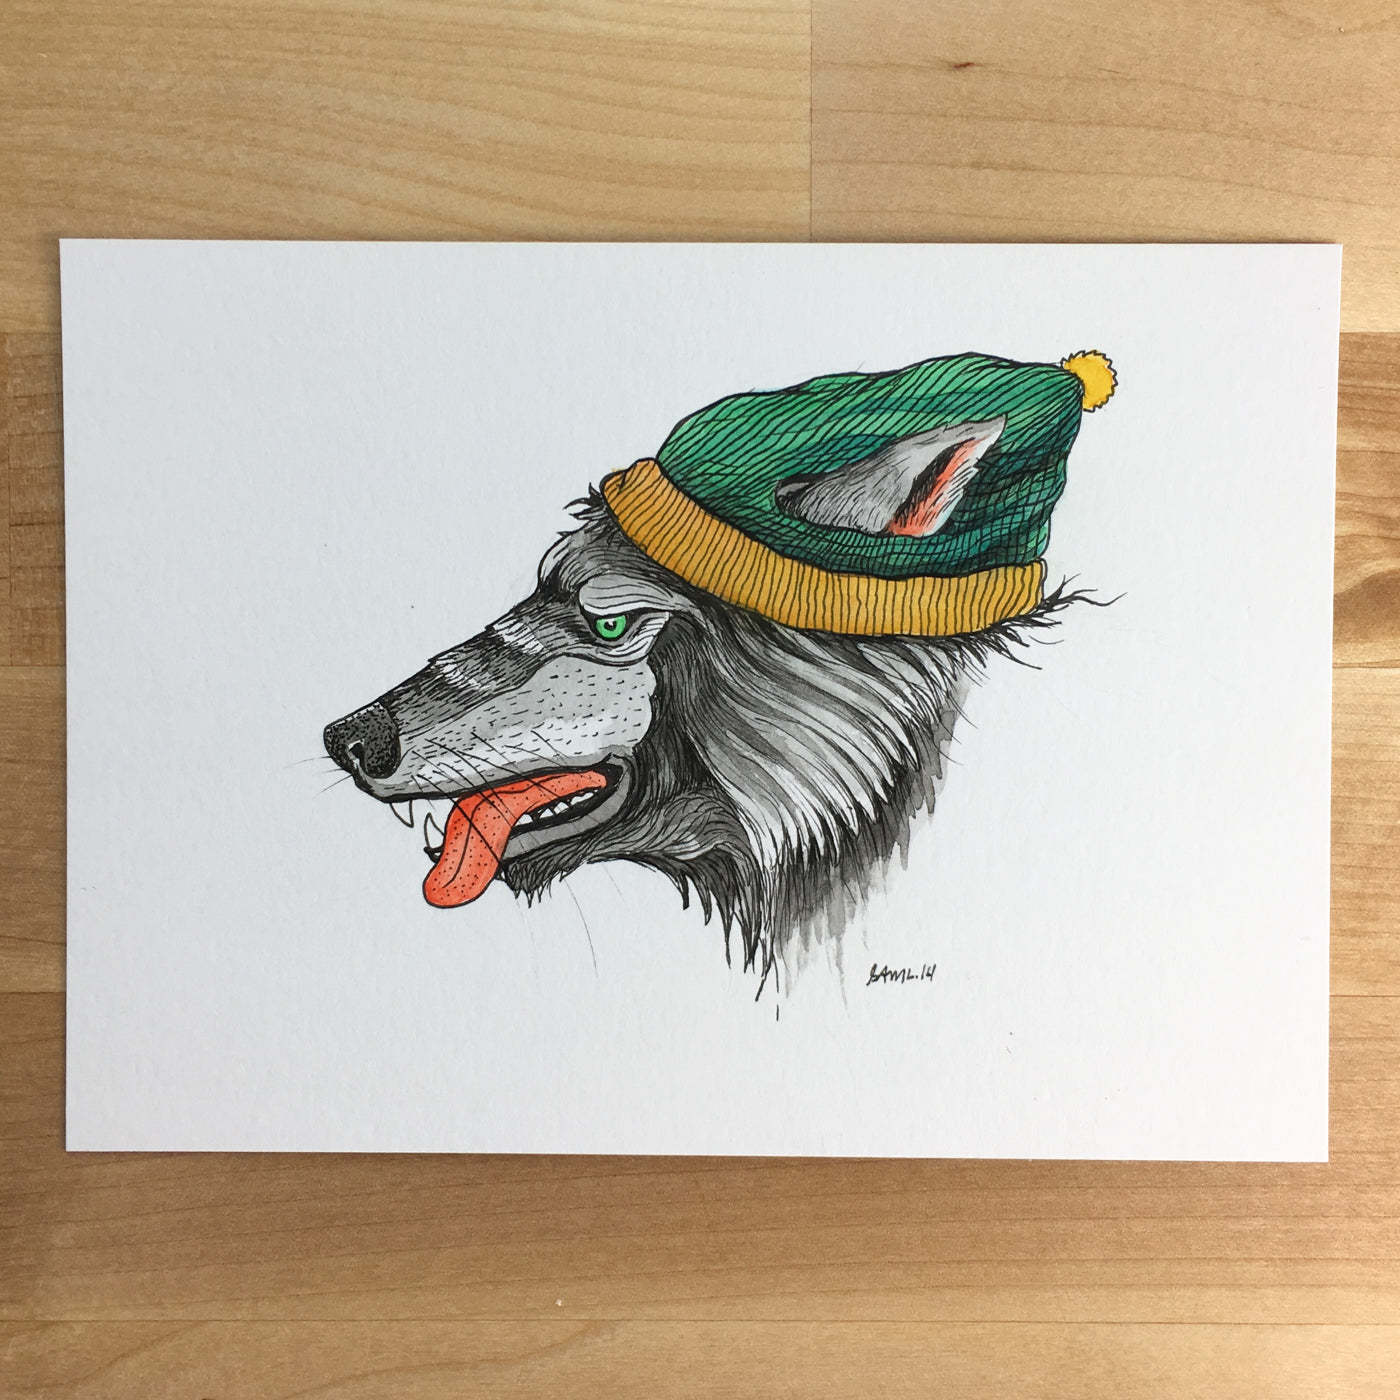 Big Bad Wolf - Original Illustration 7x5in